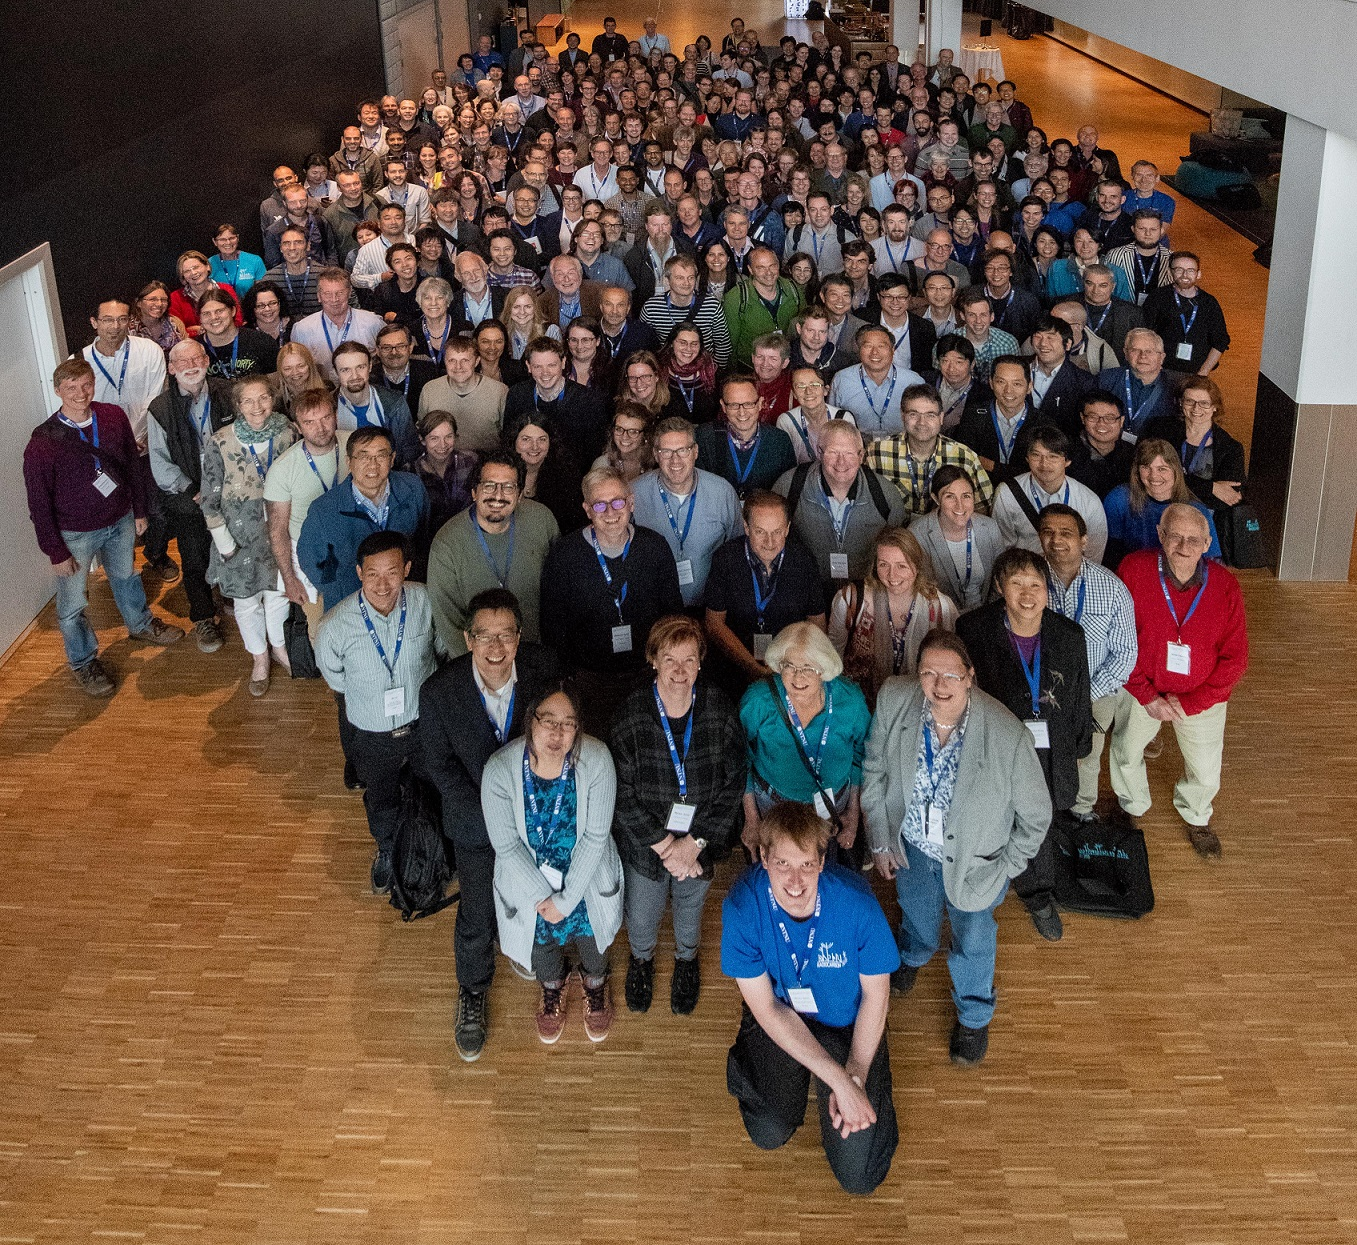 conference attendees group photo